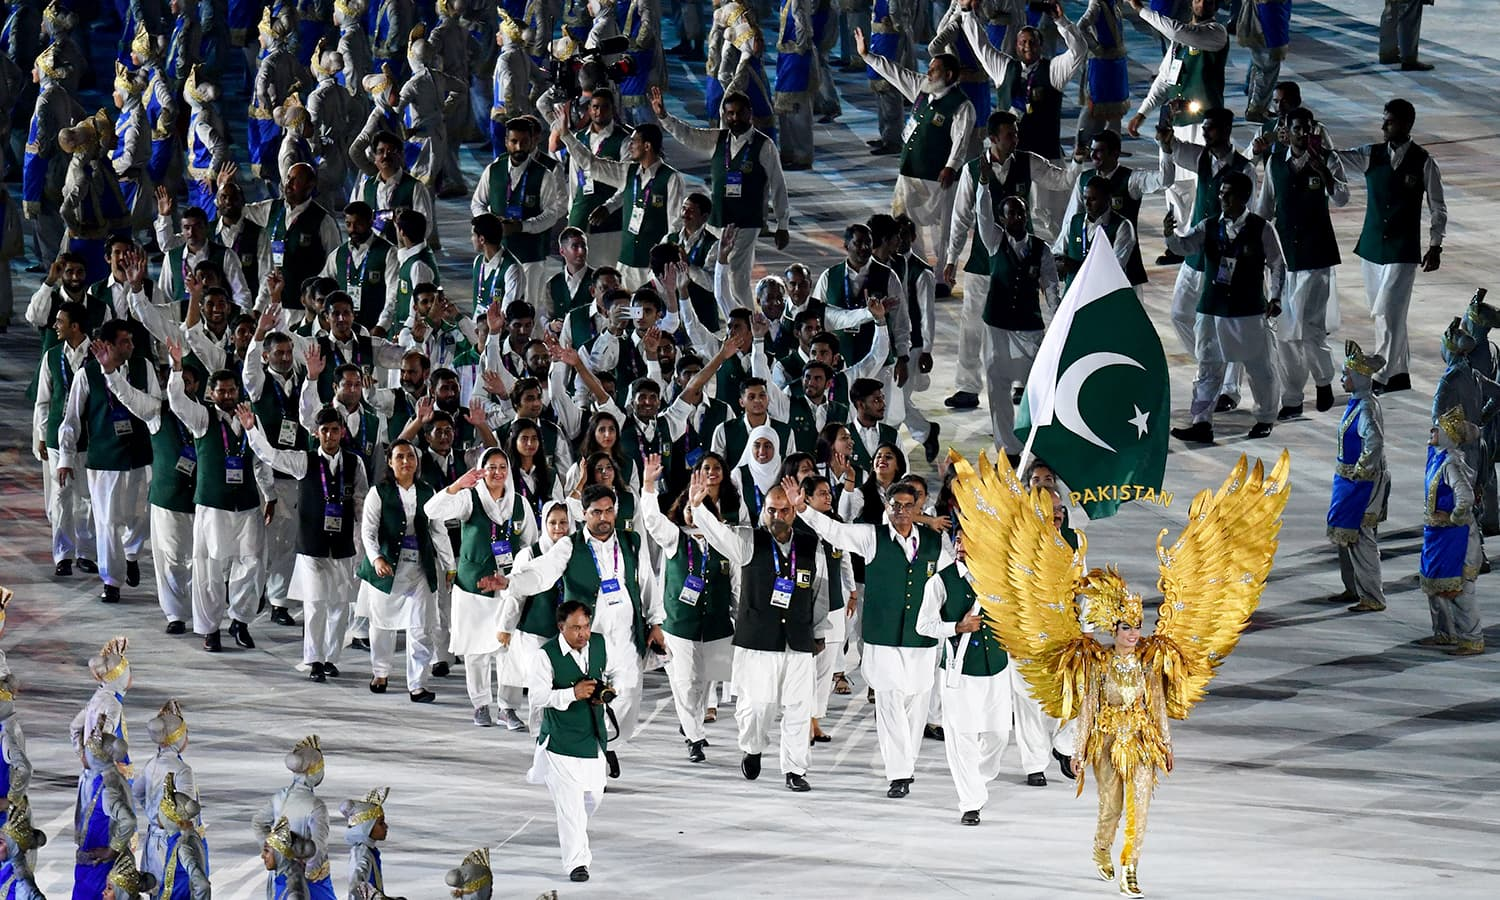 Pakistan's delegation parades during the opening ceremony of the 2018 Asian Games. —AFP